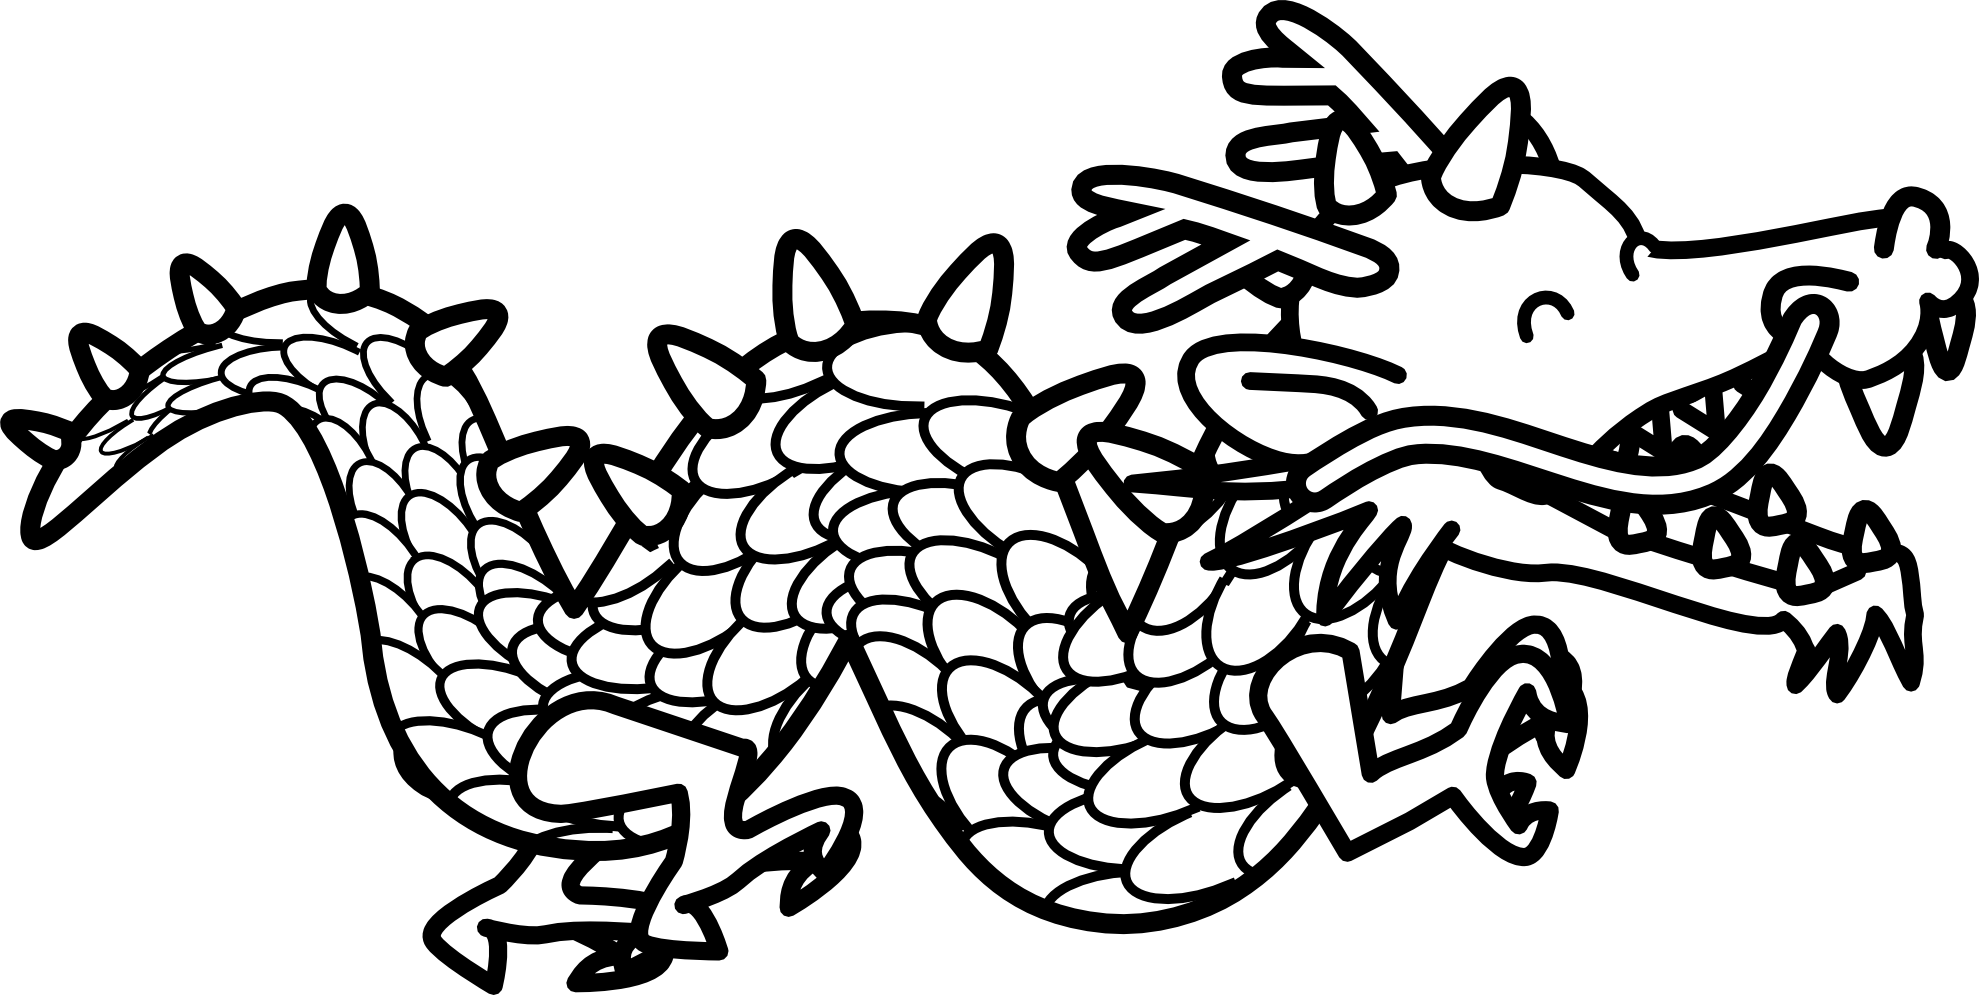 Dragon 2 Black White Line Art Coloring Book Colouring Coloring